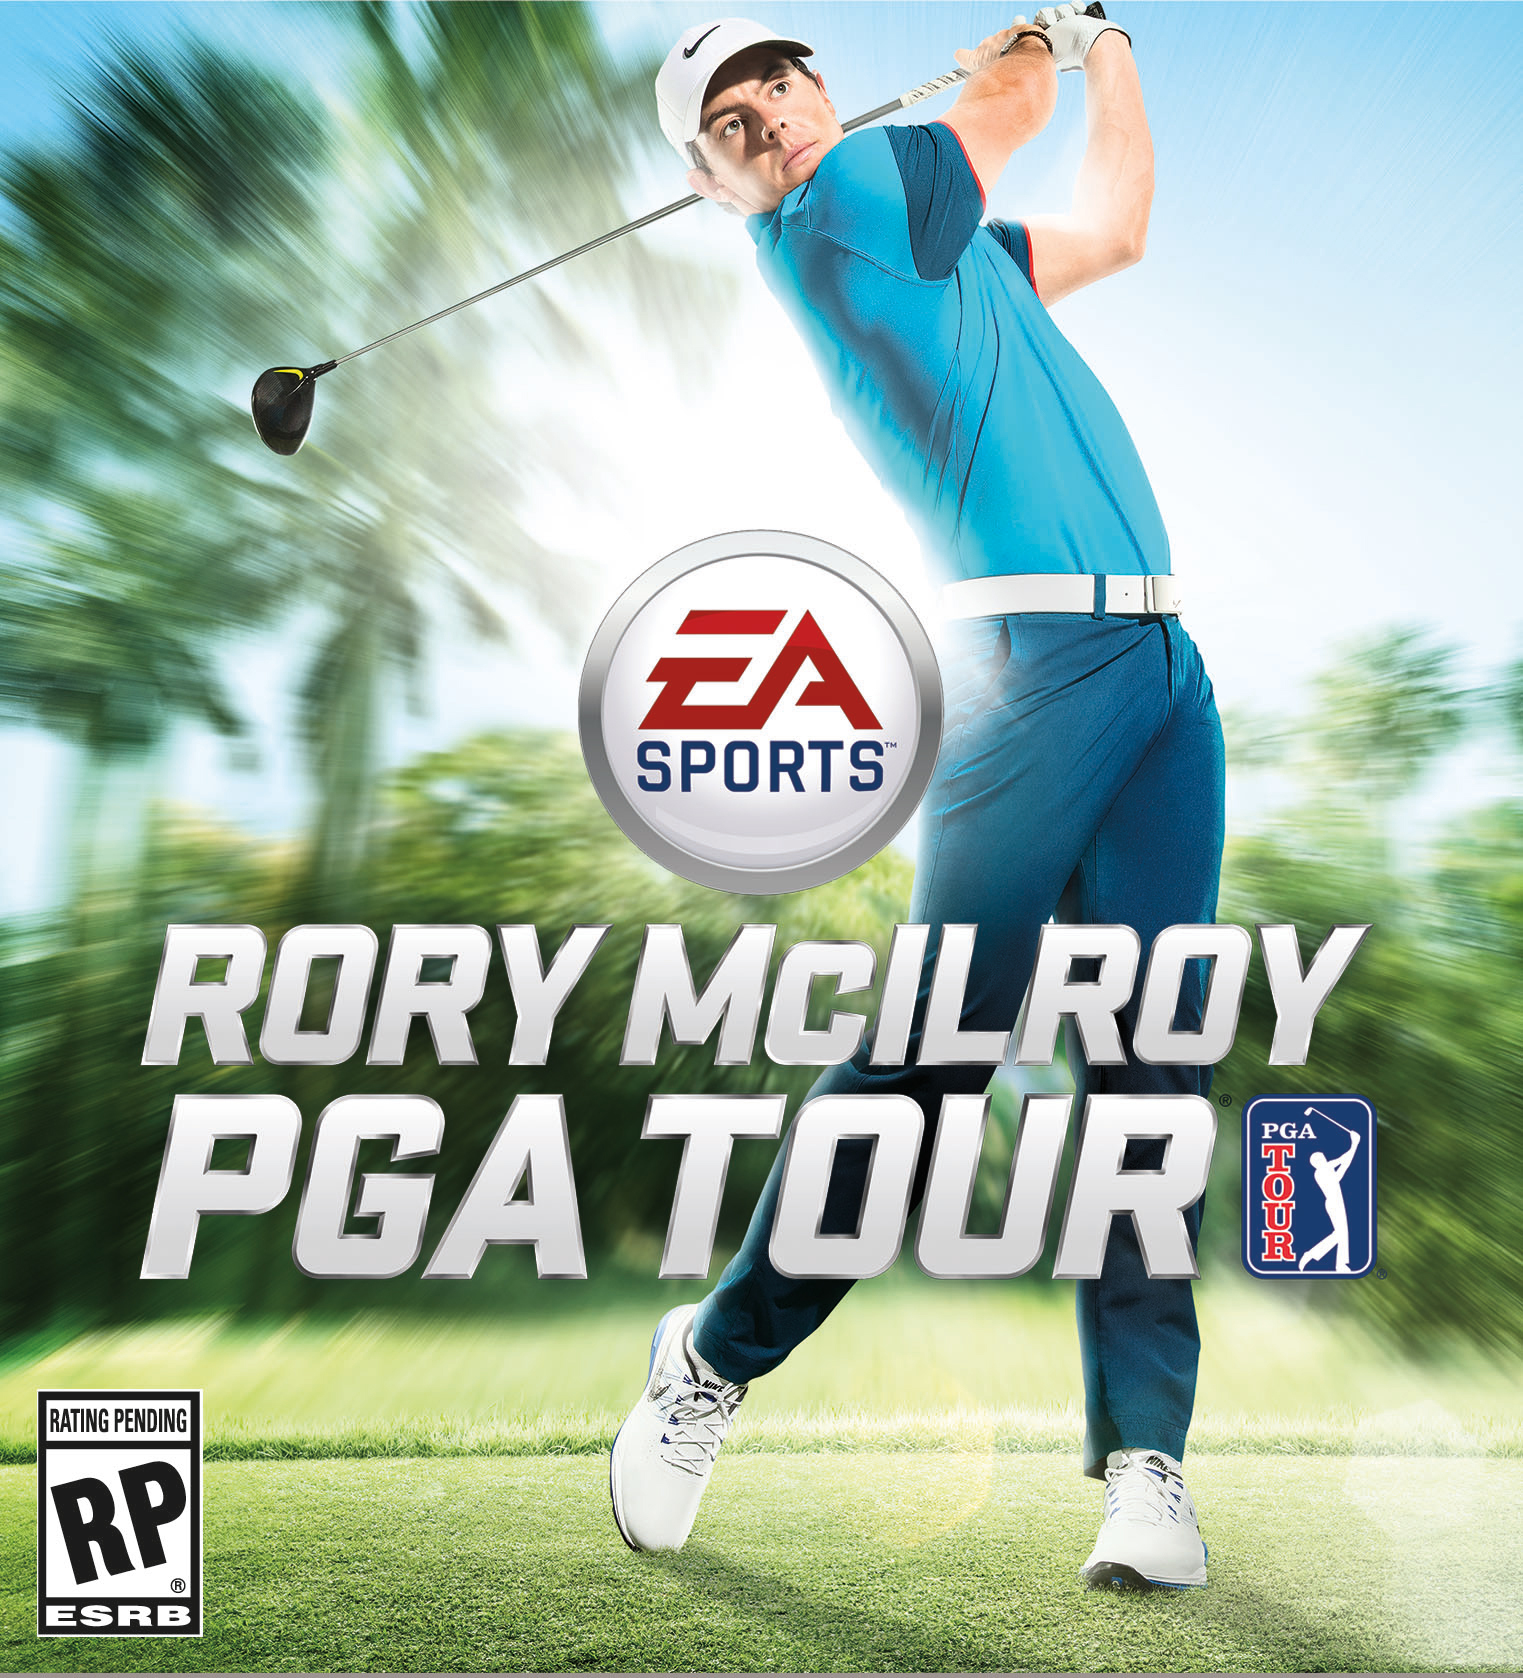 405fc42c3ba9bb No Augusta National in Rory McIlroy PGA TOUR